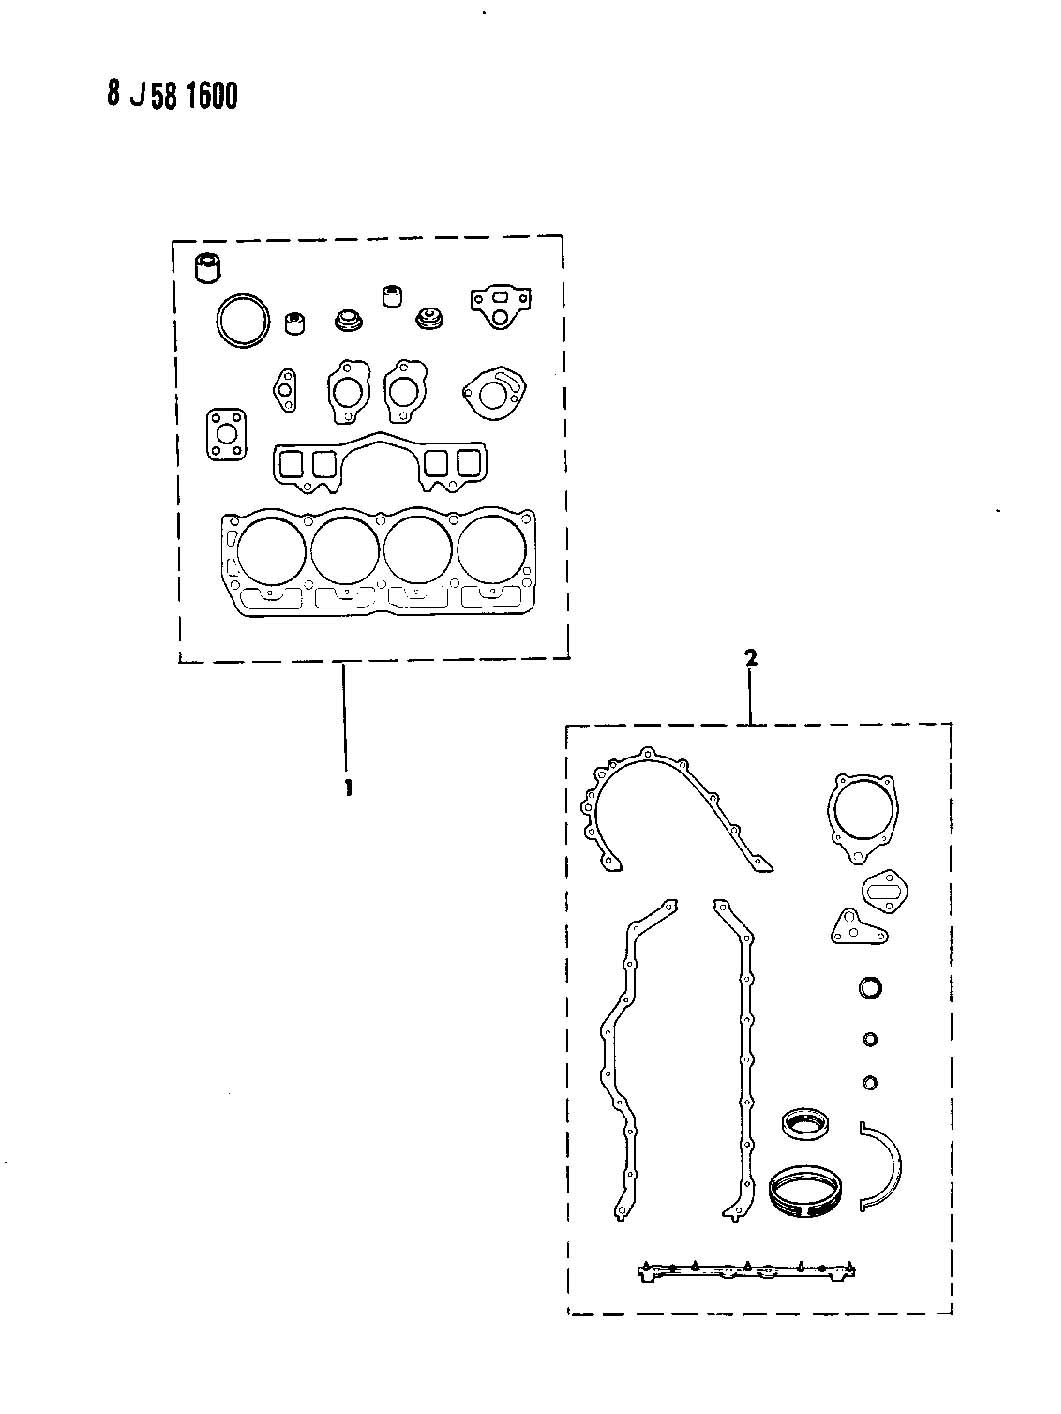 Grand Wagoneer Wiring Harness Auto Electrical Diagram 1987 Jeep For 89 Anche